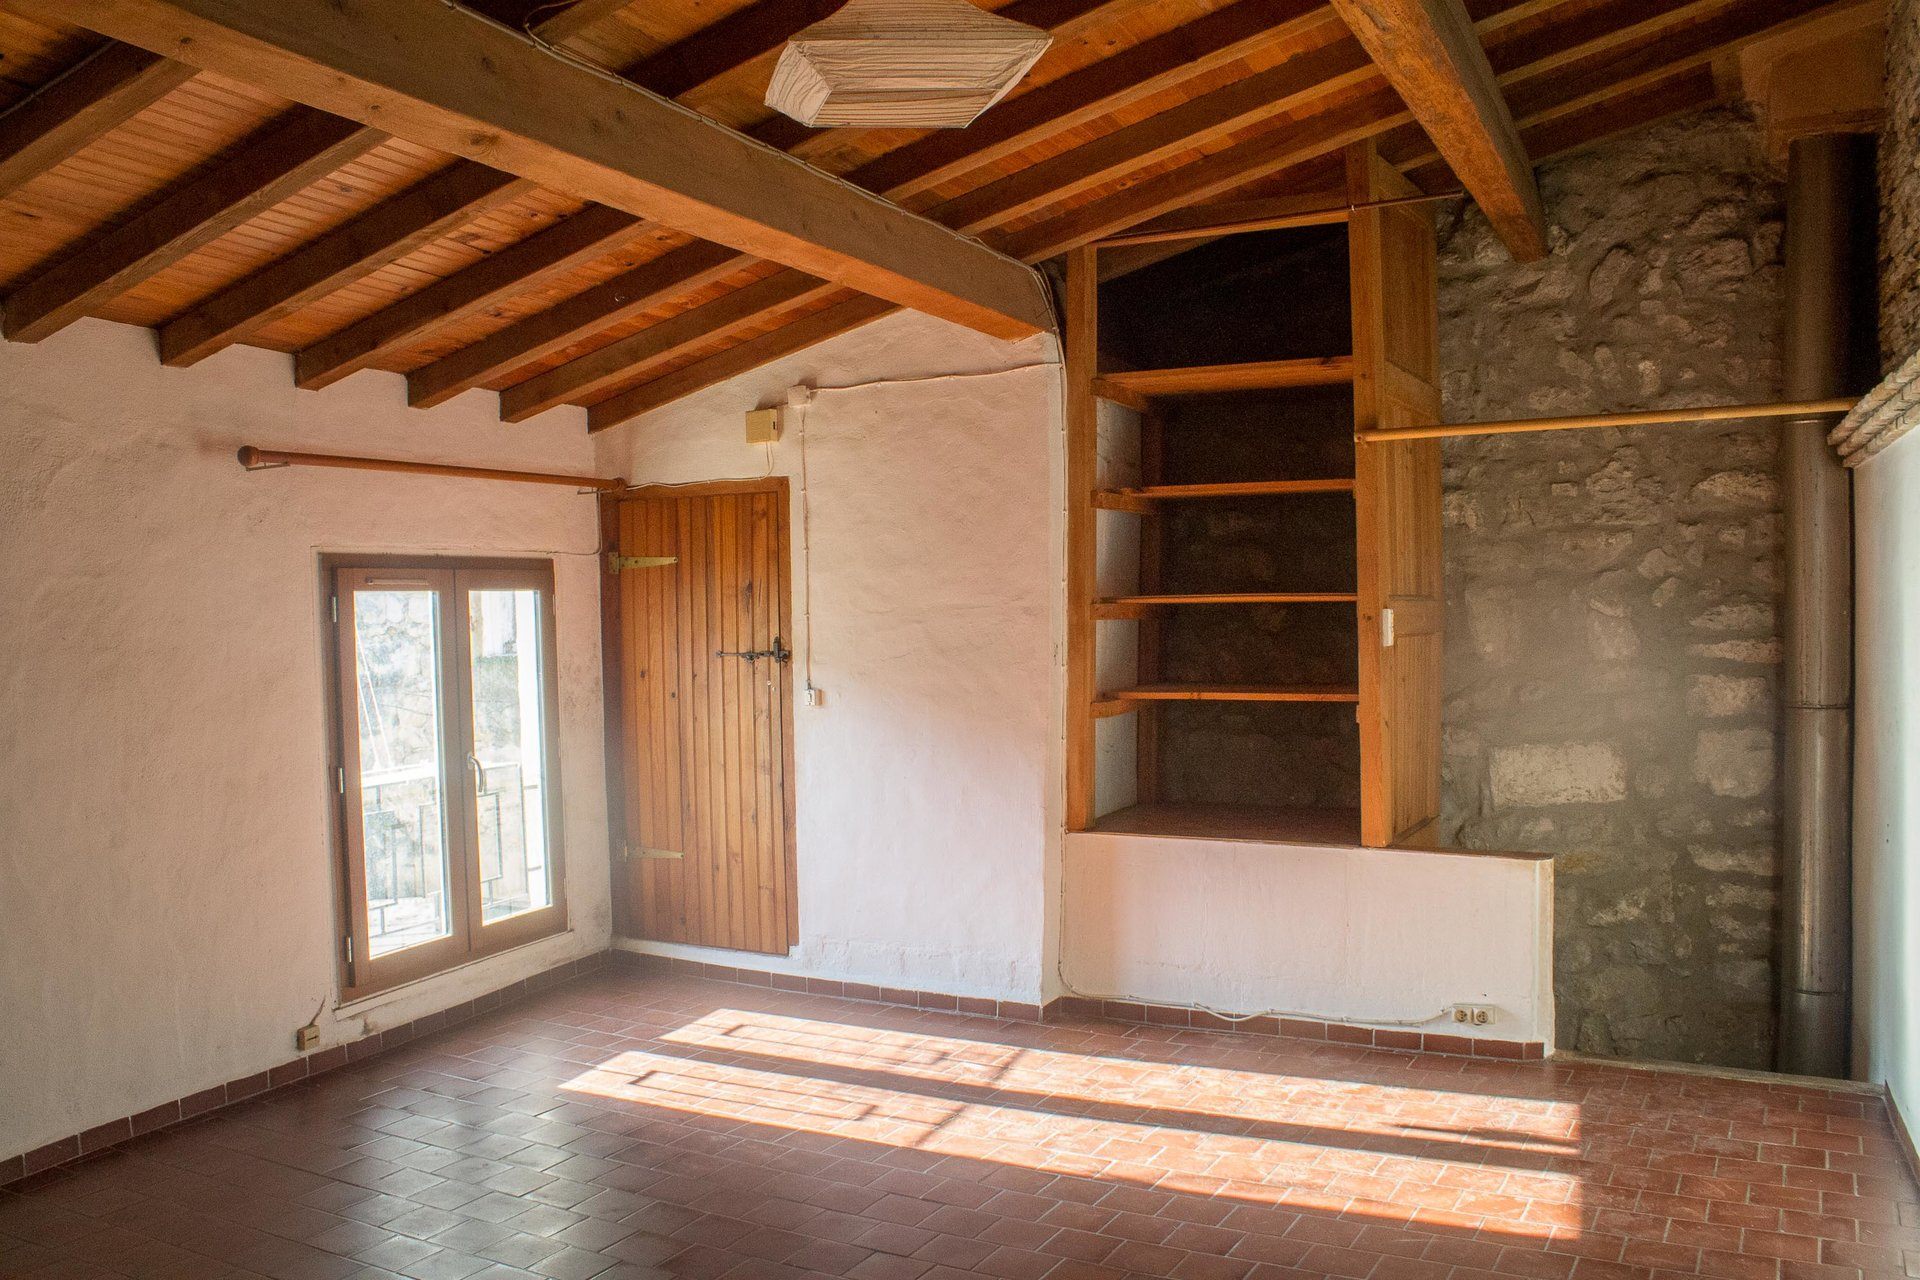 70 m² IN A QUIET CENTRAL AREA OF ARLES